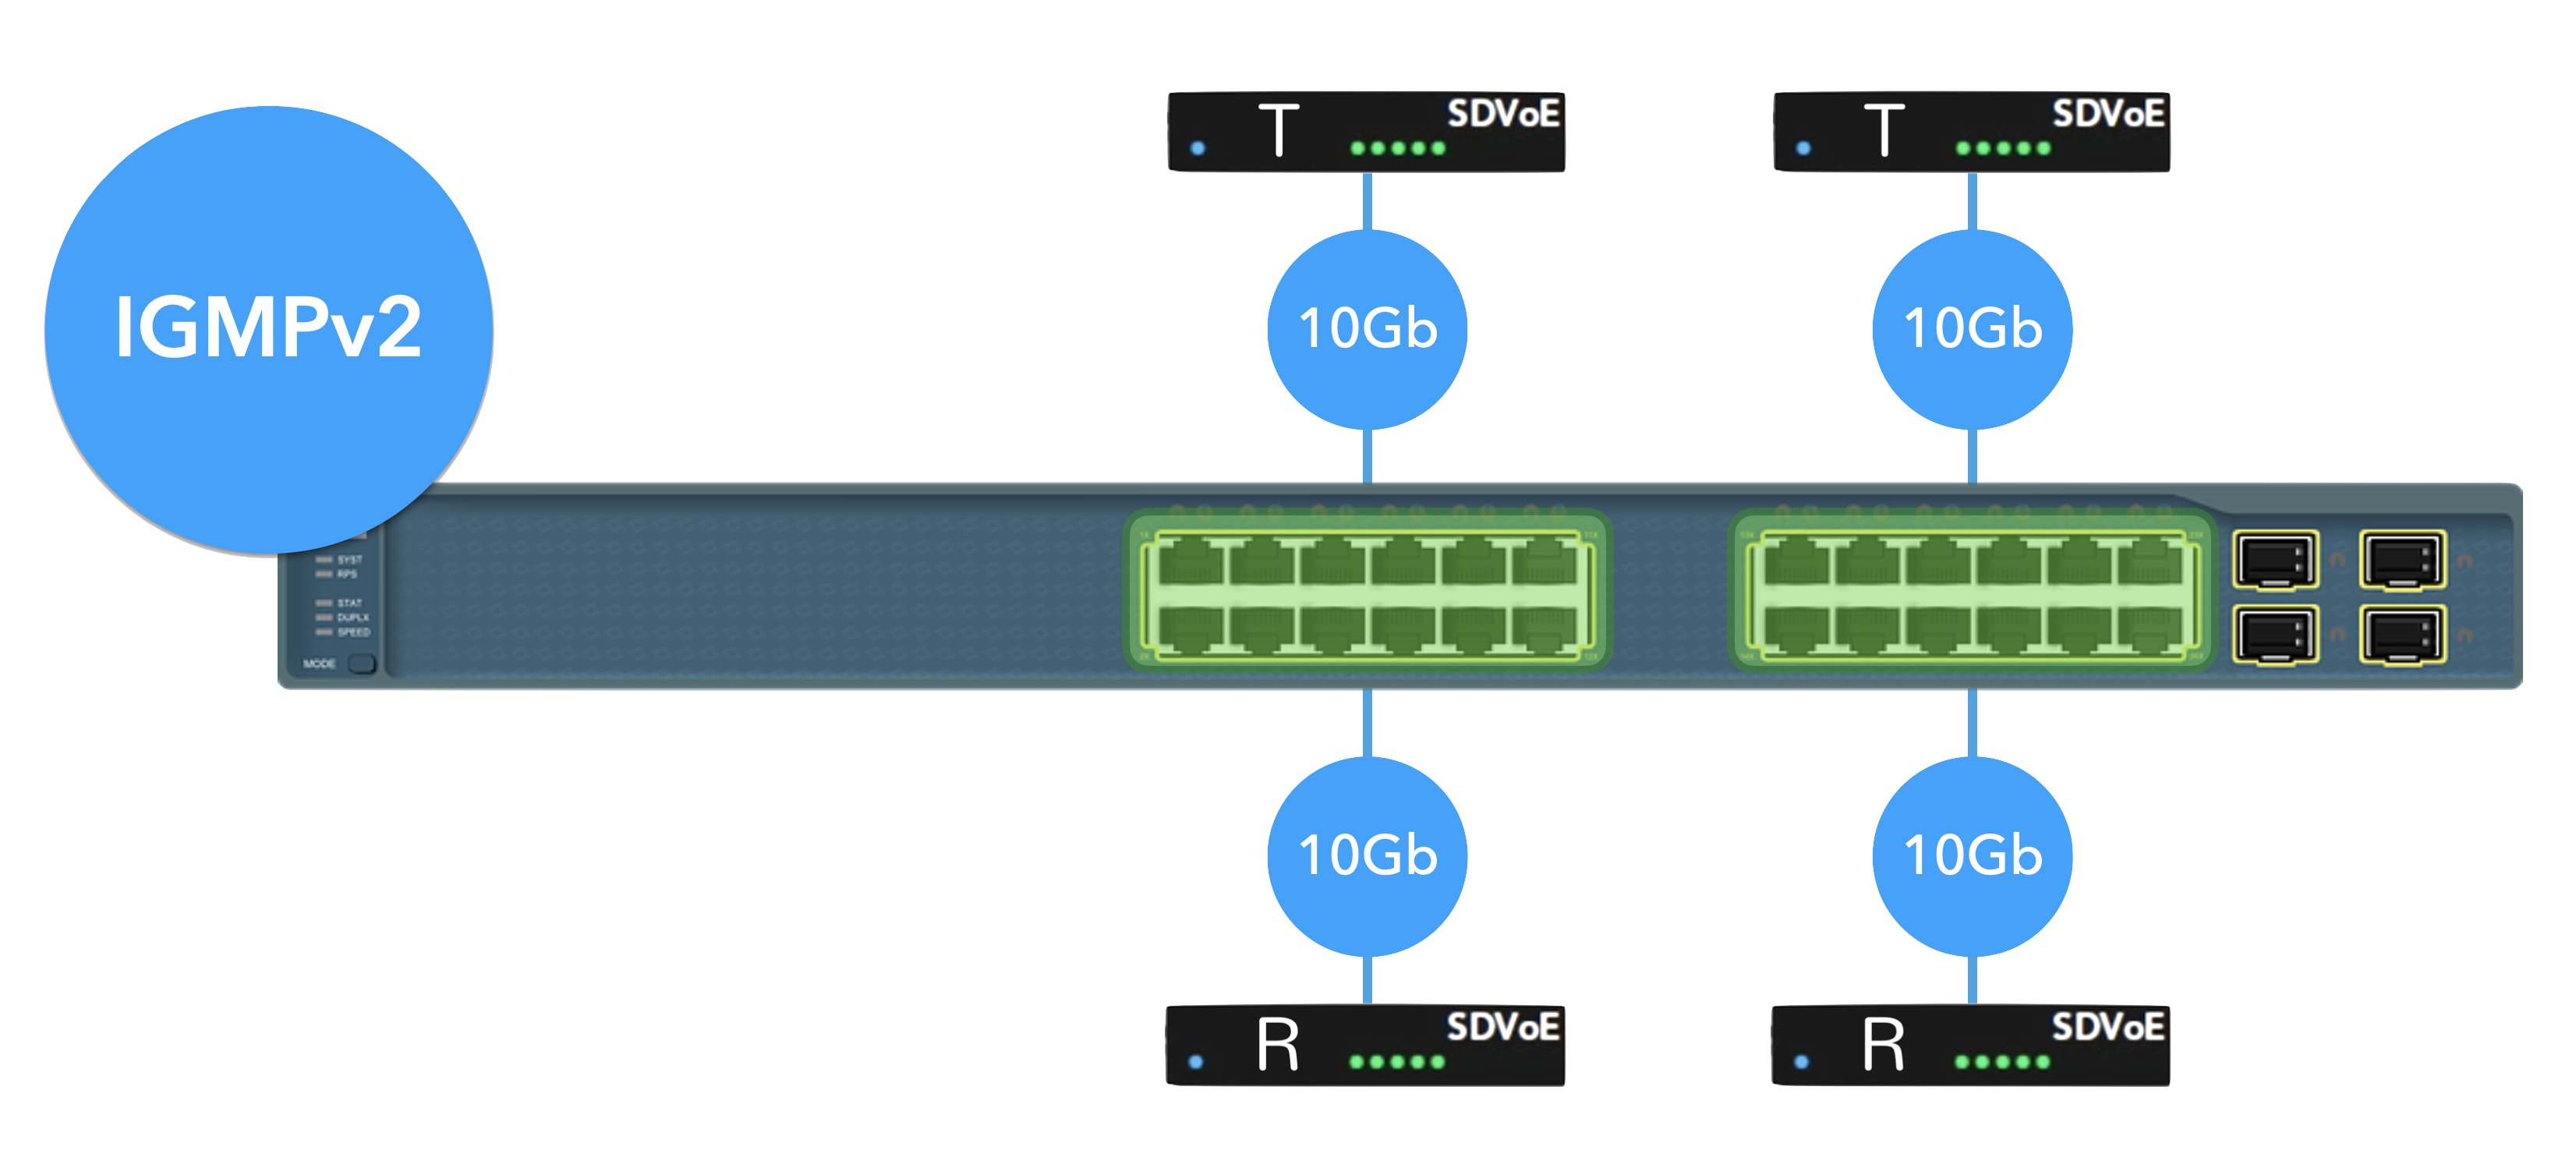 What are The Requirements for an SDVoE Switch?